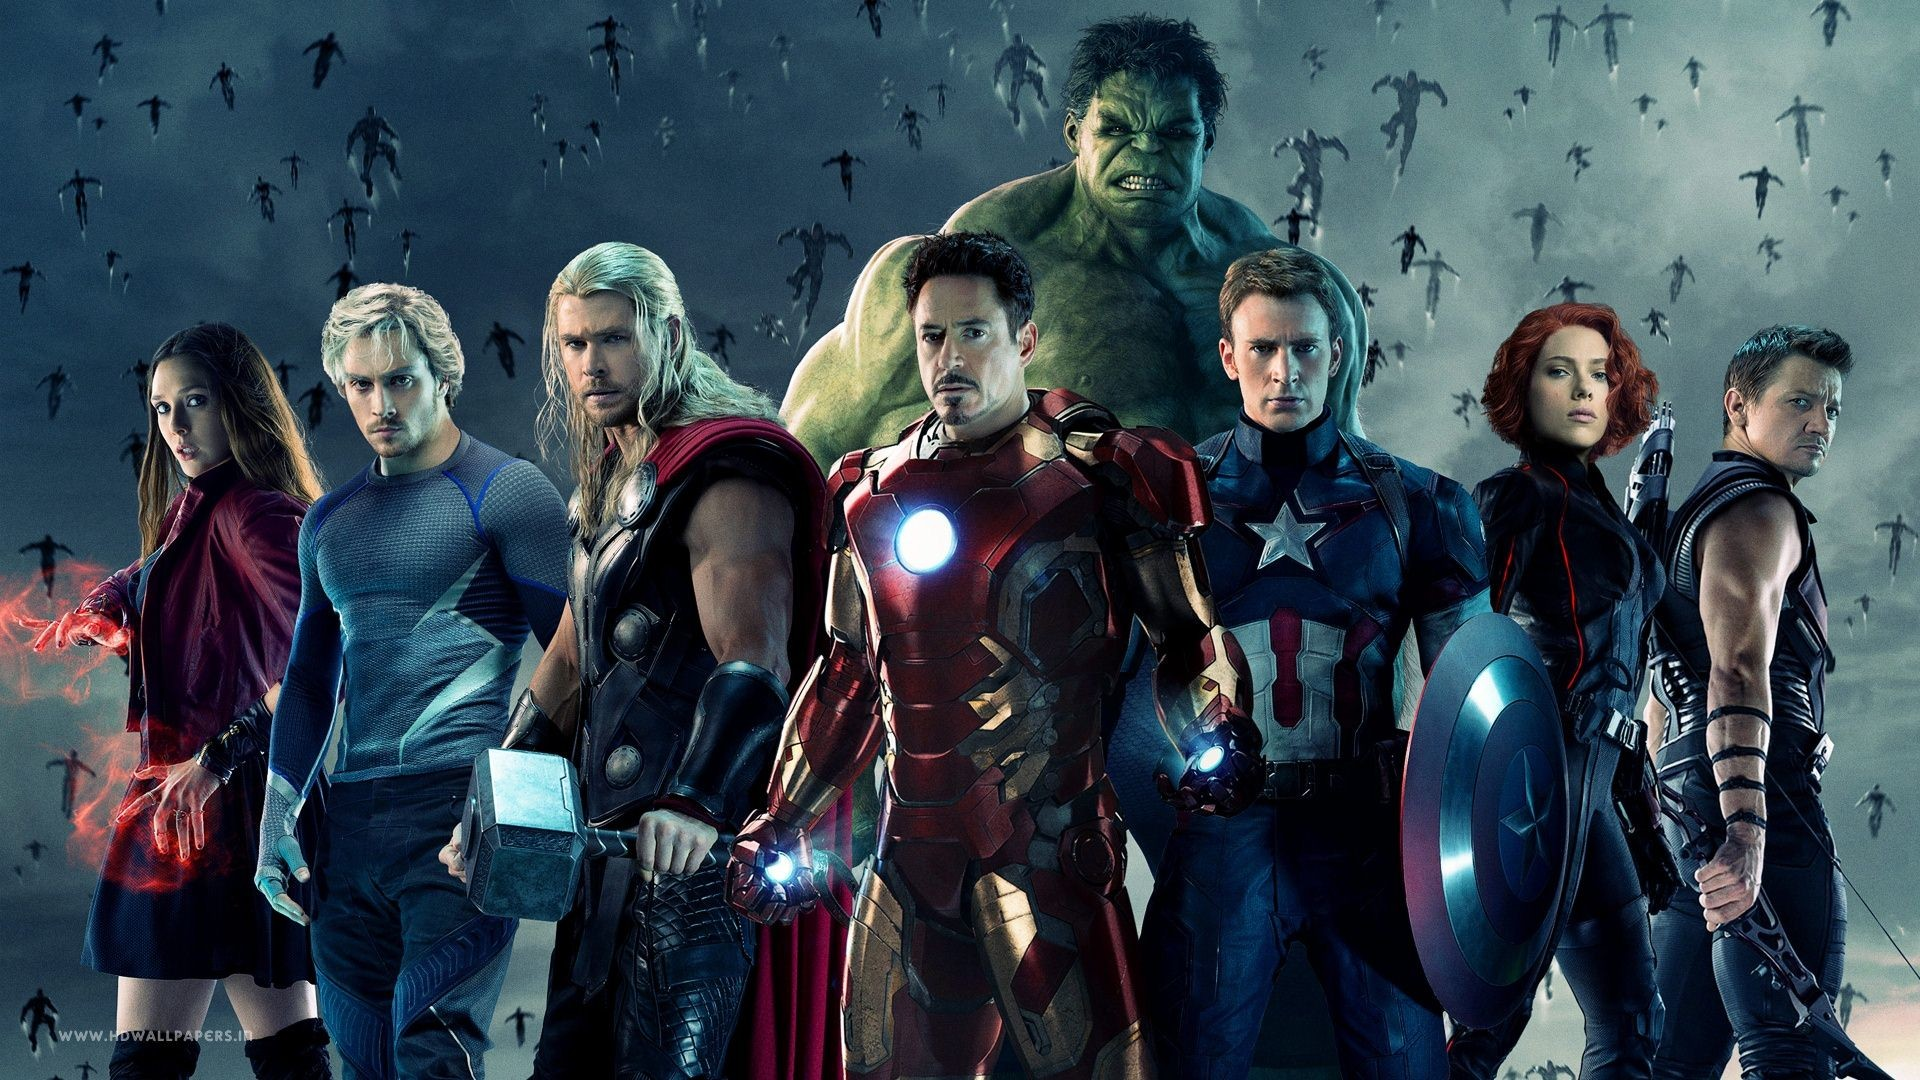 1920x1080 wallpaper.wiki-HD-avengers-live-wallpaper-android-full-